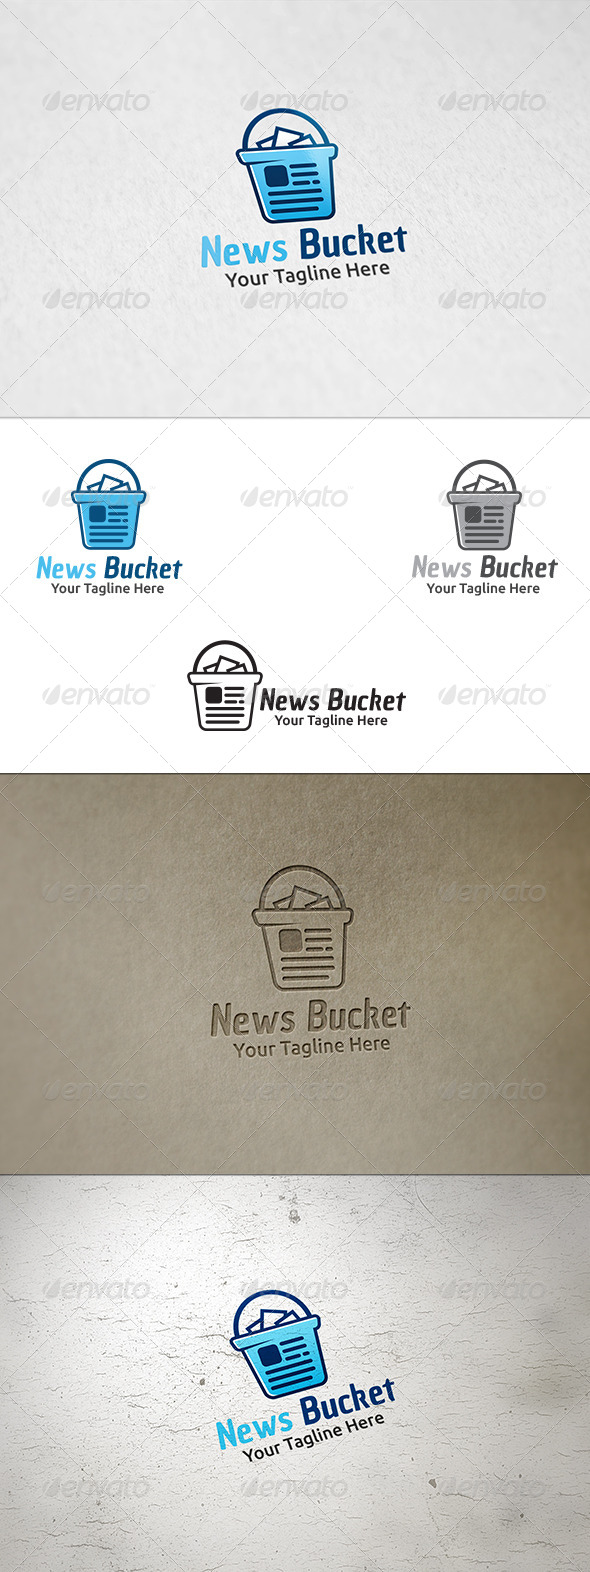 GraphicRiver News Bucket Logo Template 8587587